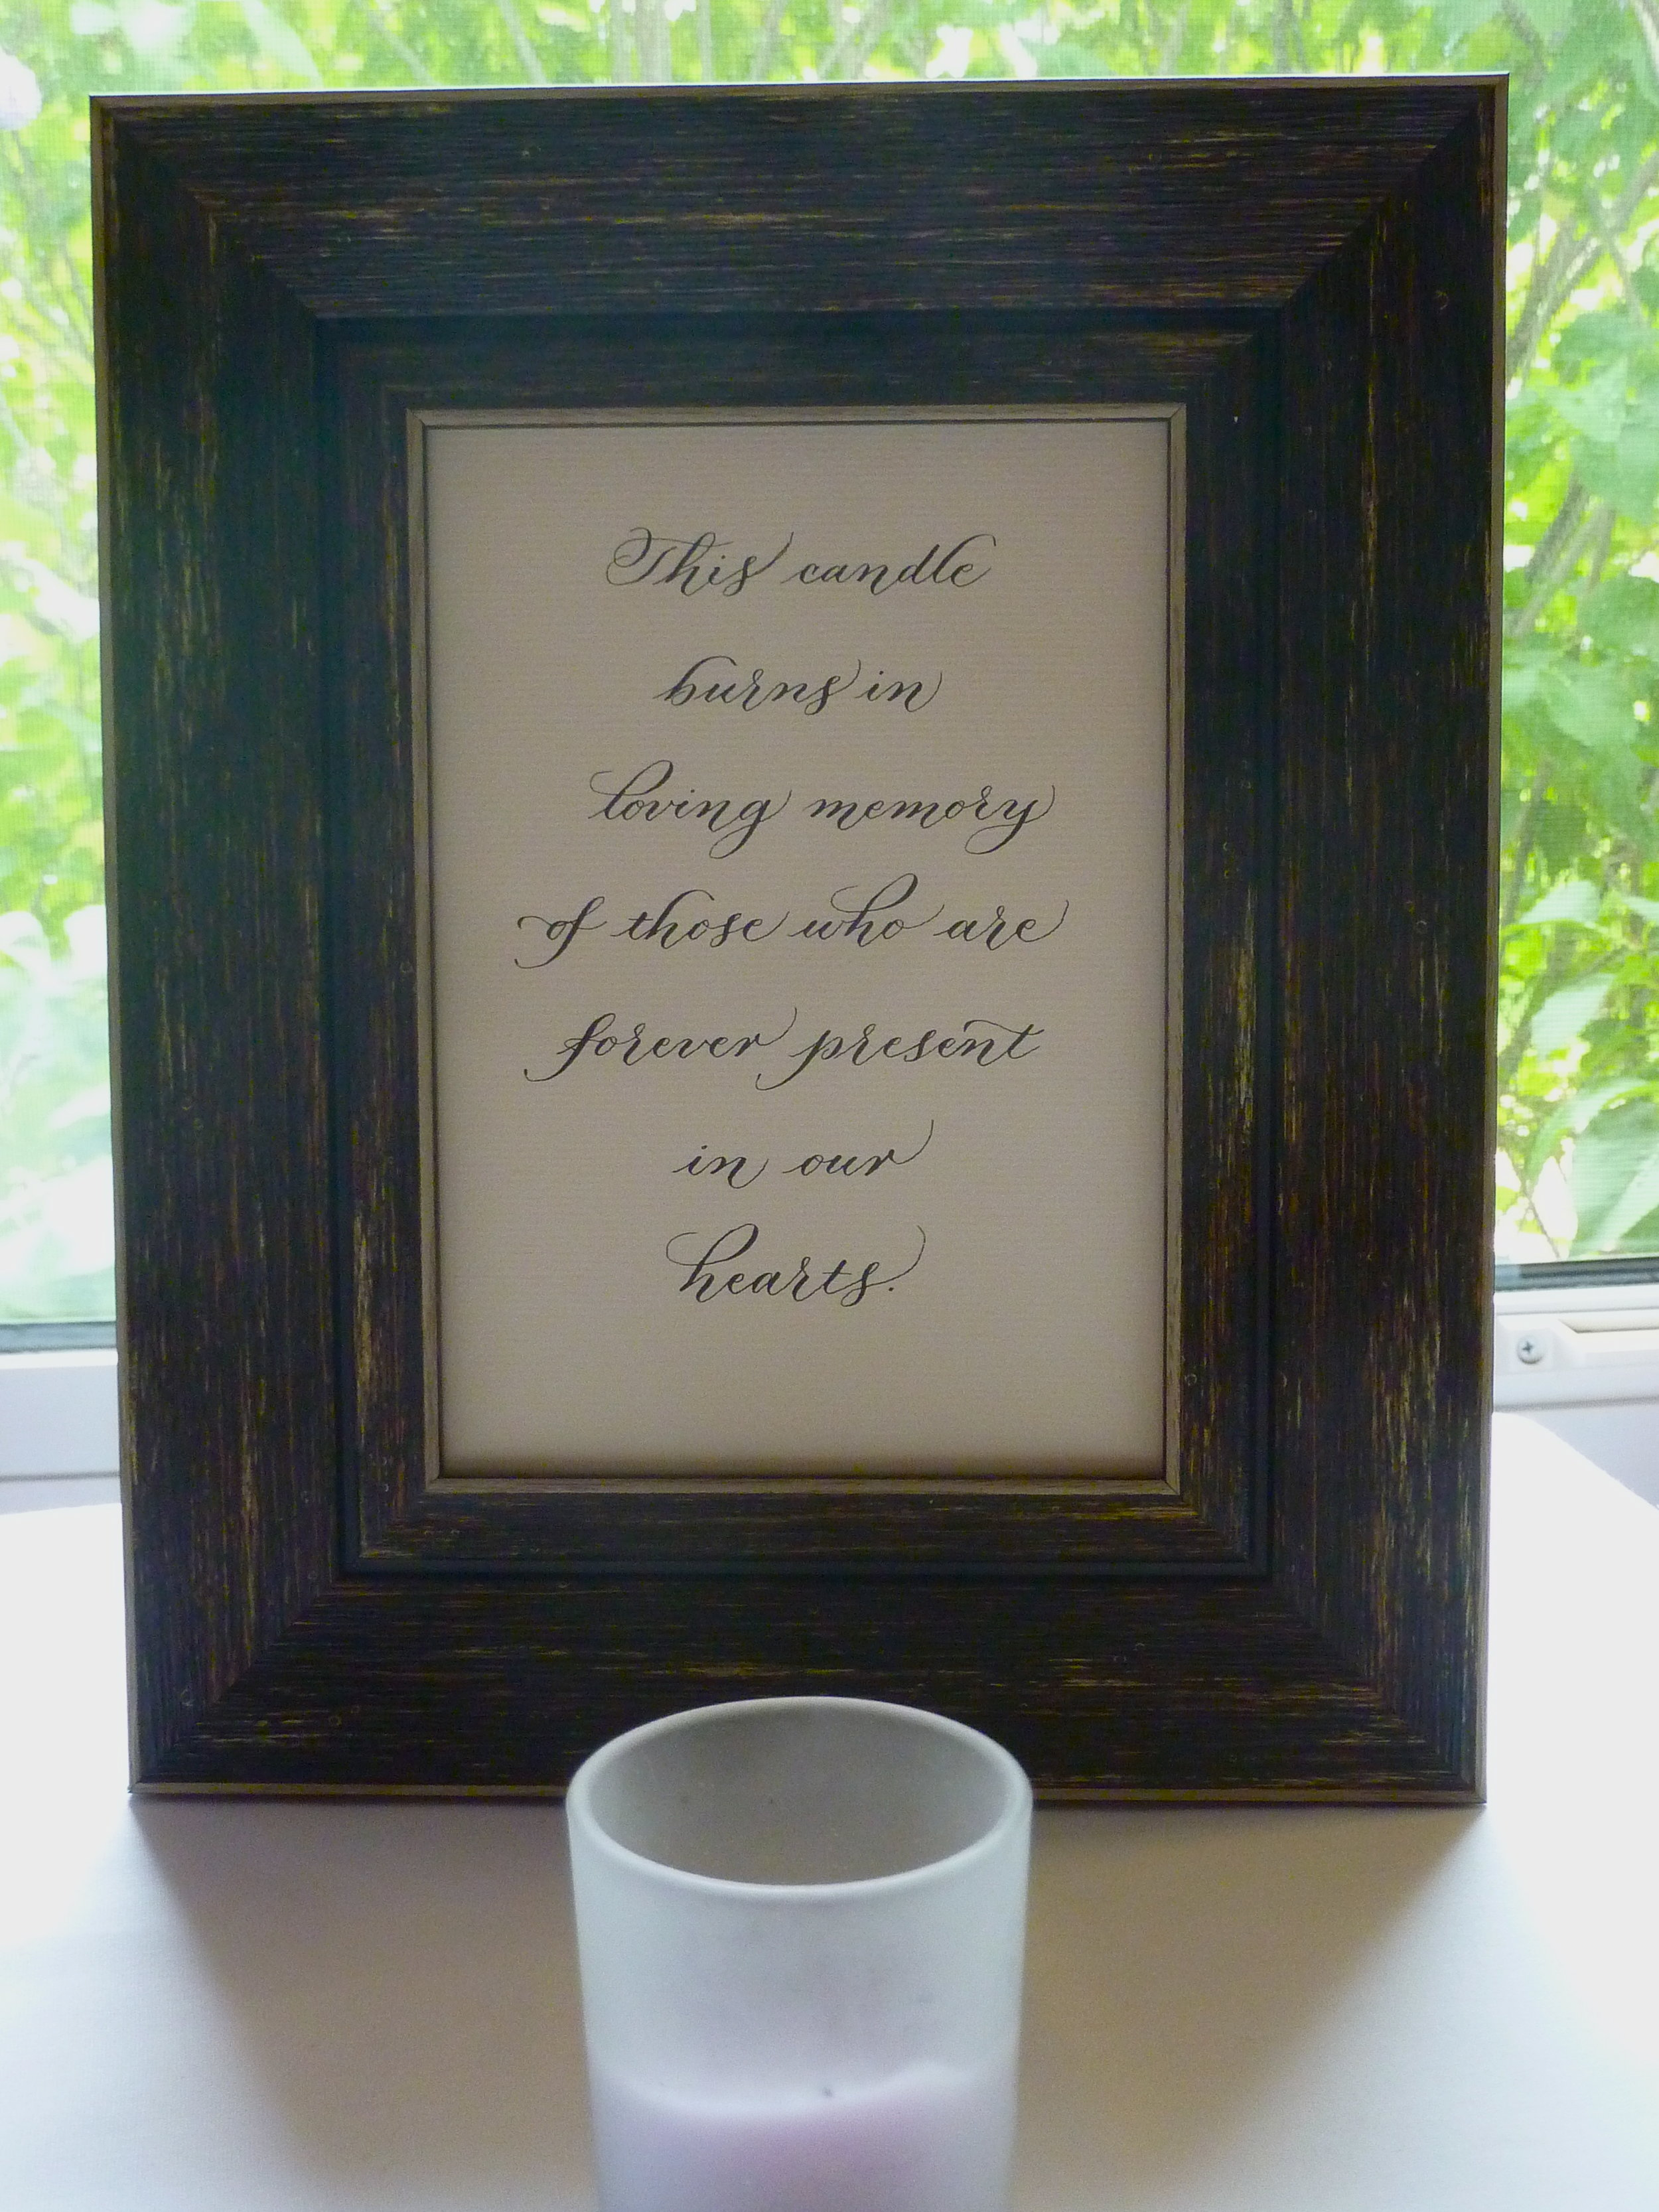 Memory candle sign.jpg